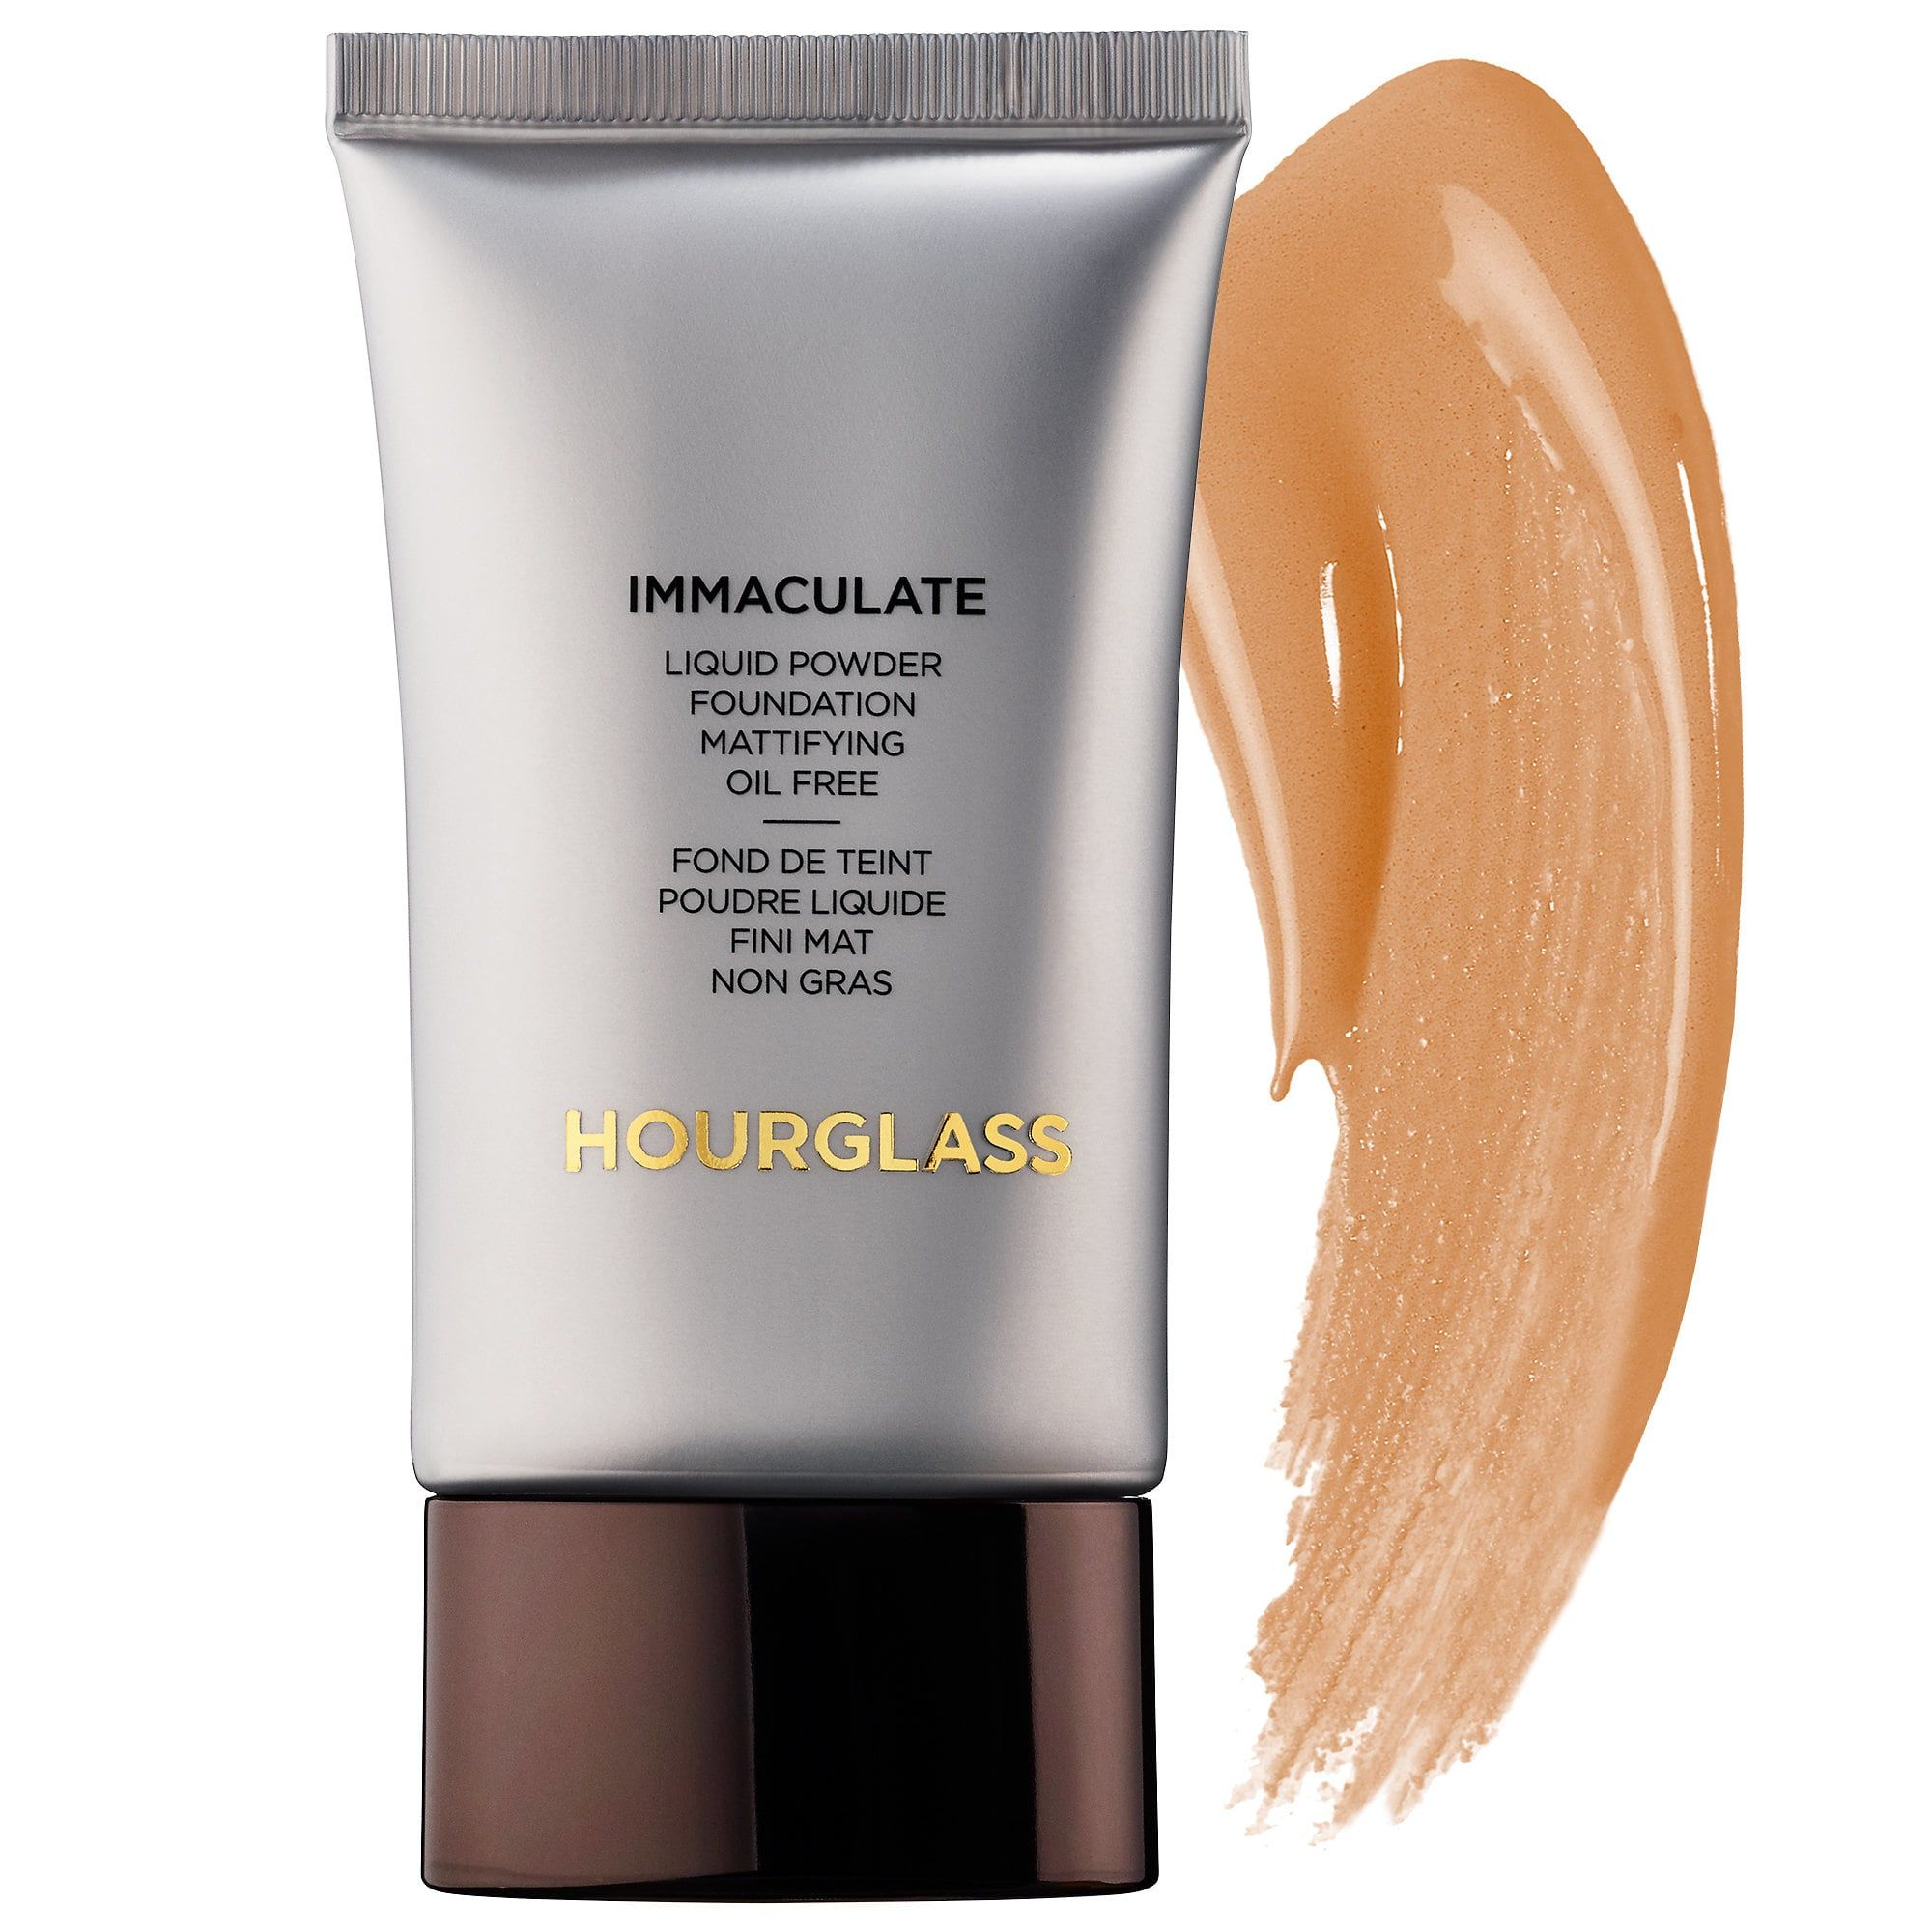 For Evening Out Skin Tone Immaculate Liquid Powder Foundation Mattifying Oil Free Hourglass $56.00 SHOP NOW I can go through the whole day sans touch ups using this all-time popular foundation for oily skin. Its innovative liquid-to-powder formula not only evens out spots, but also reportedly improves acne scars, pore size, and decreases oil production altogether.